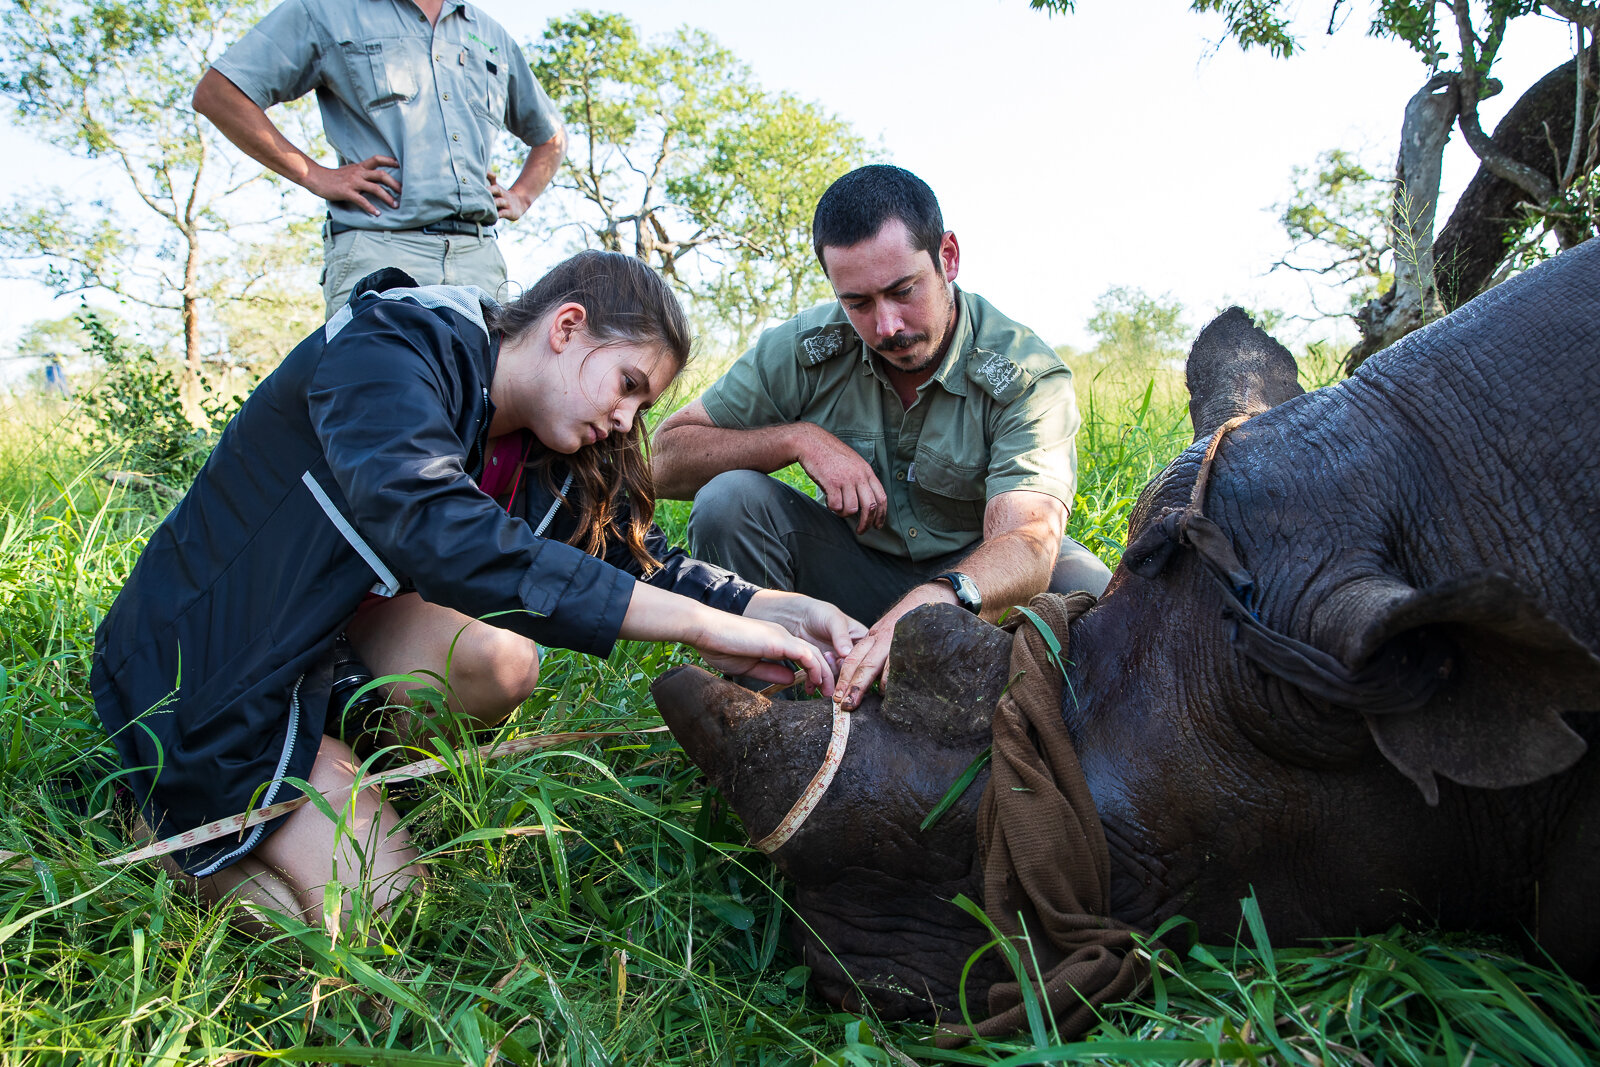 Volunteer Izzy Nesci works with a park ranger to measure a rhino horn before a dehorning procedure. Photo Credit: Charles Chessler